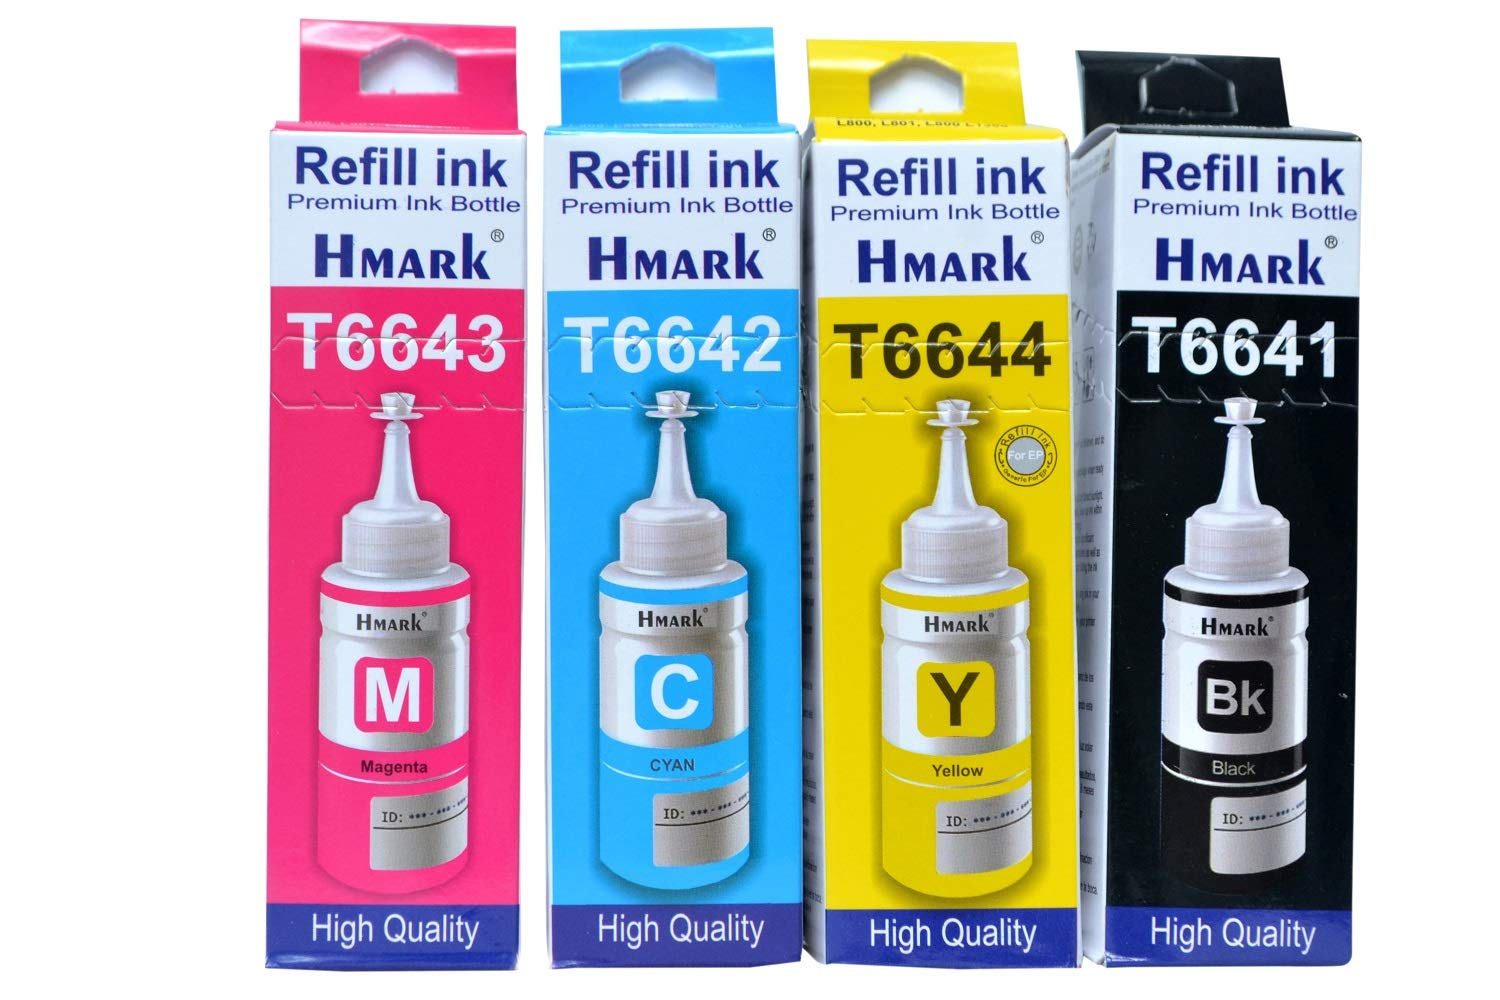 Print Cartridge 100ml Ink For Epson L100 L110 L130 L200 L210 L220 Tinta Original Magenta L300 L310 L350 L355 L360 L361 L365 L380 L385 L455 L485 L550 L555 L565 L1300